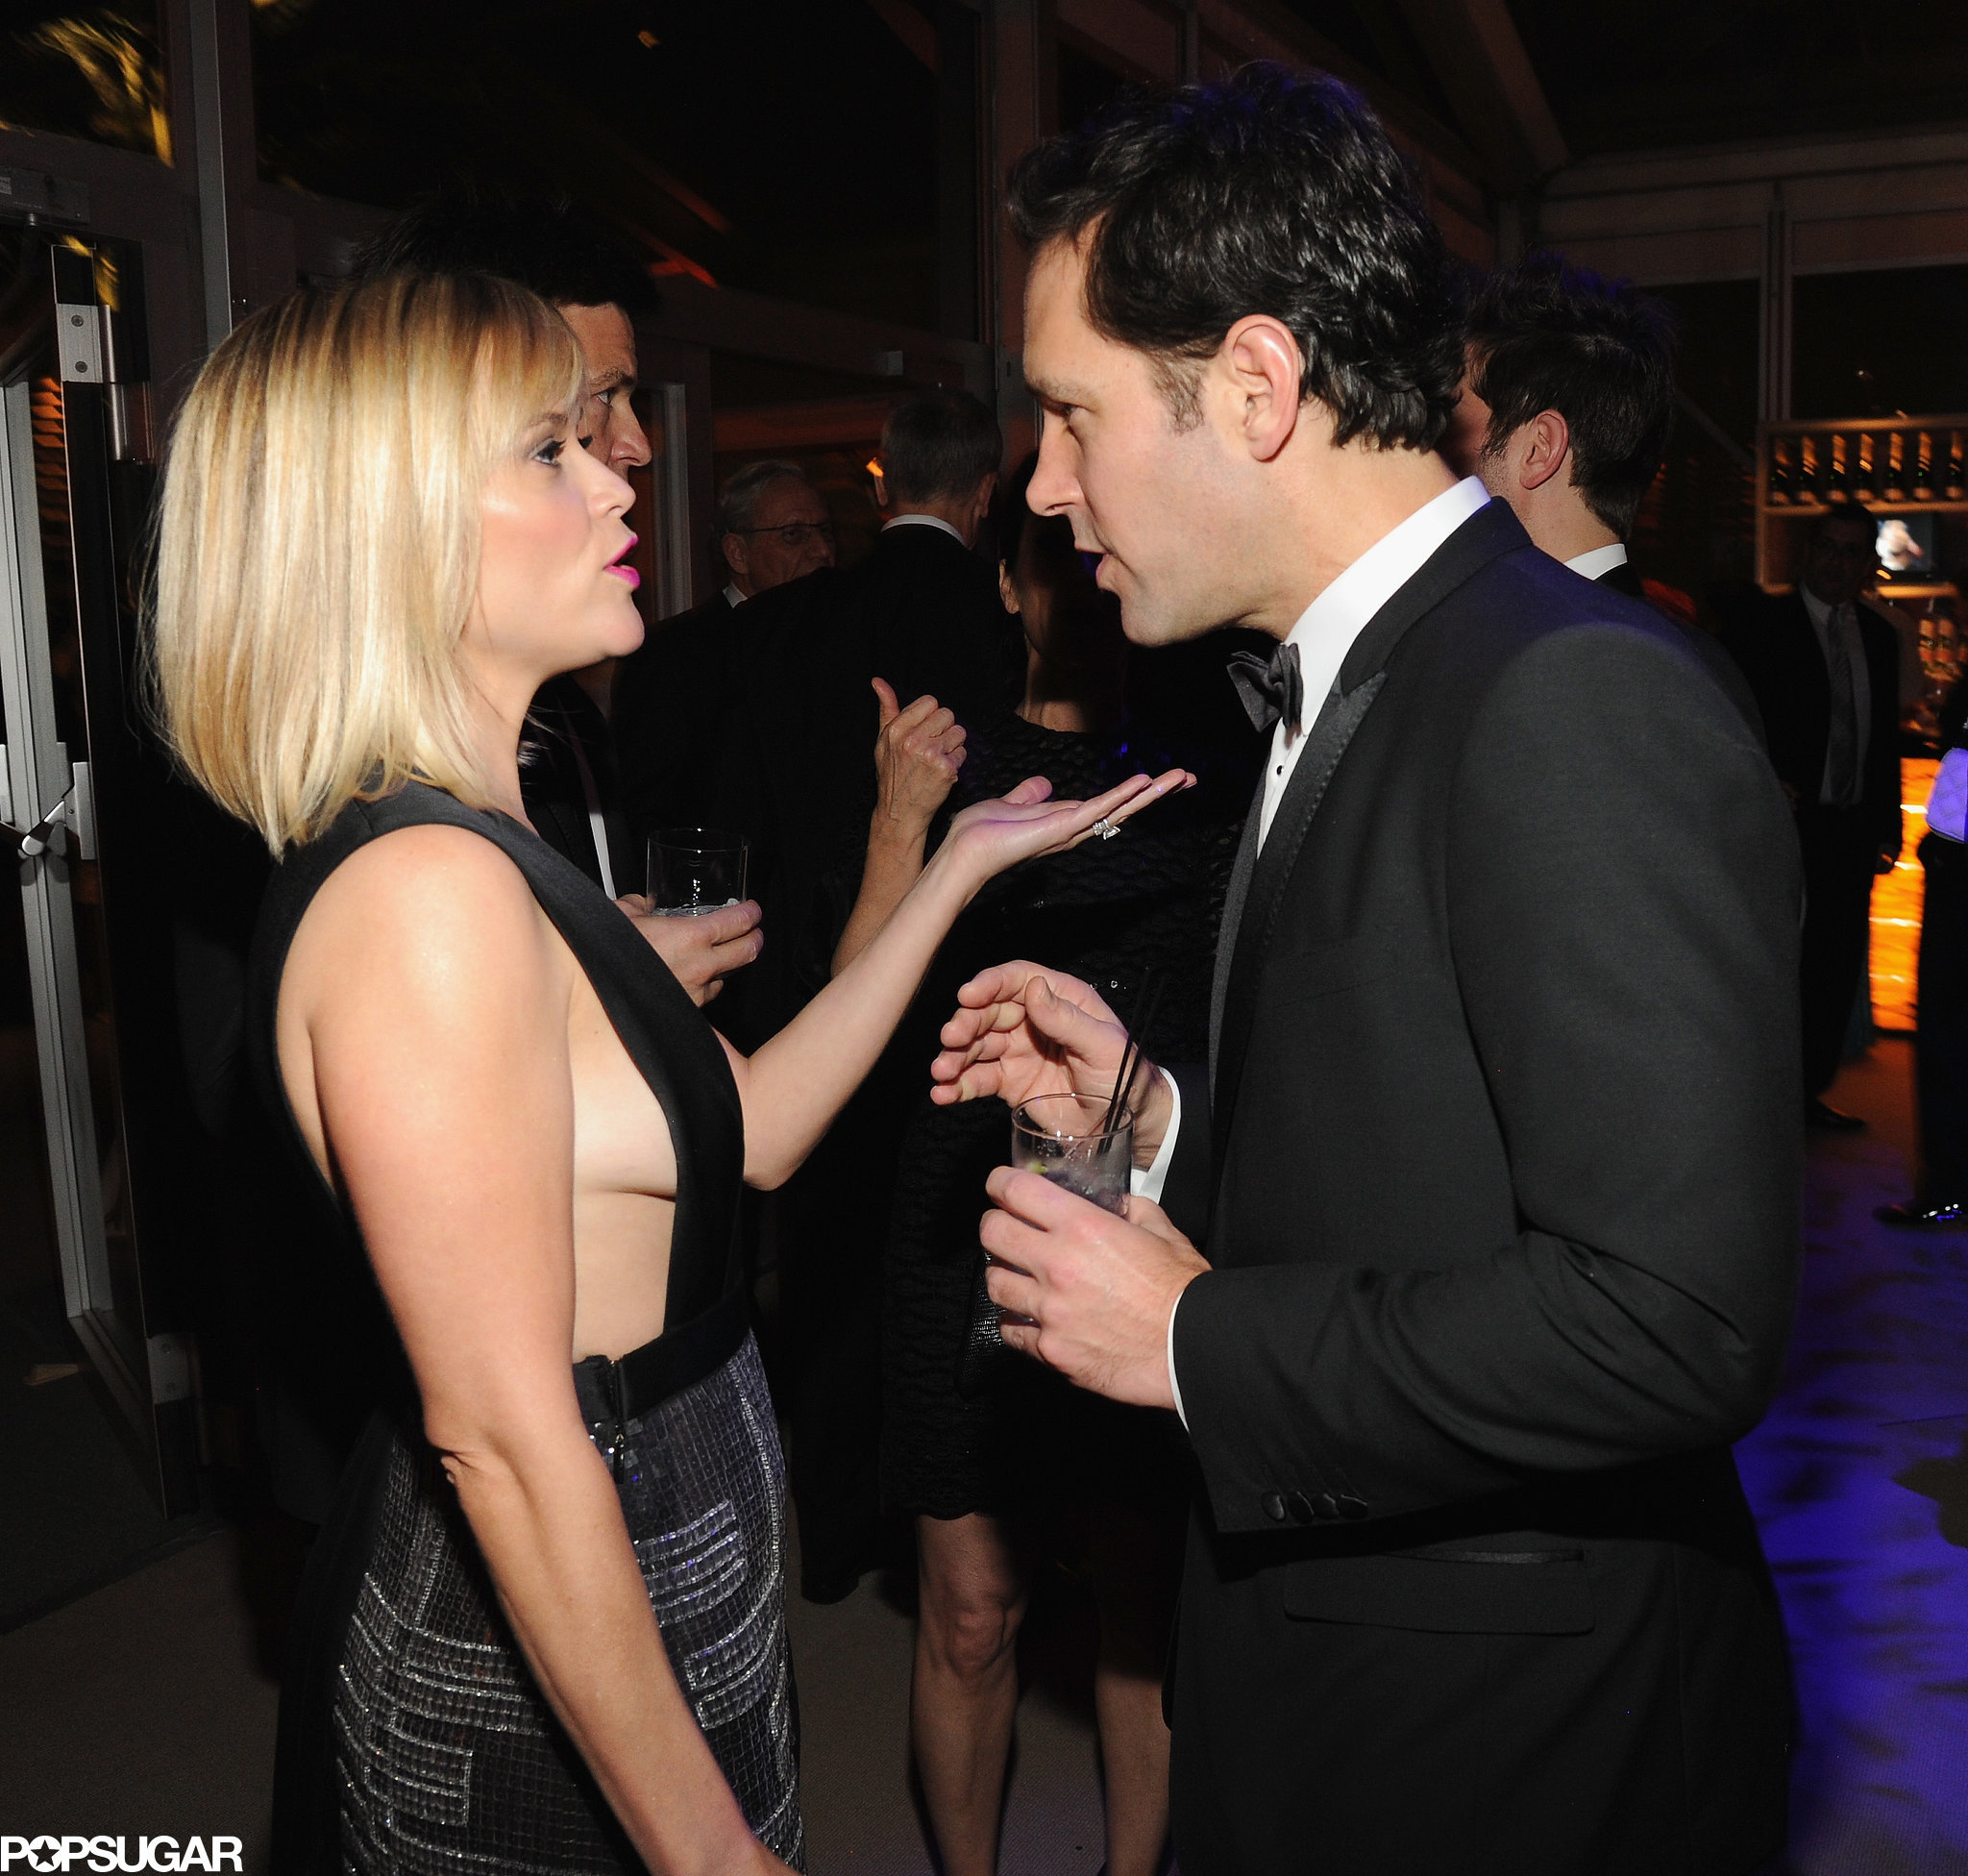 Reese Witherspoon met up with her How Do You Know costar Paul Rudd.